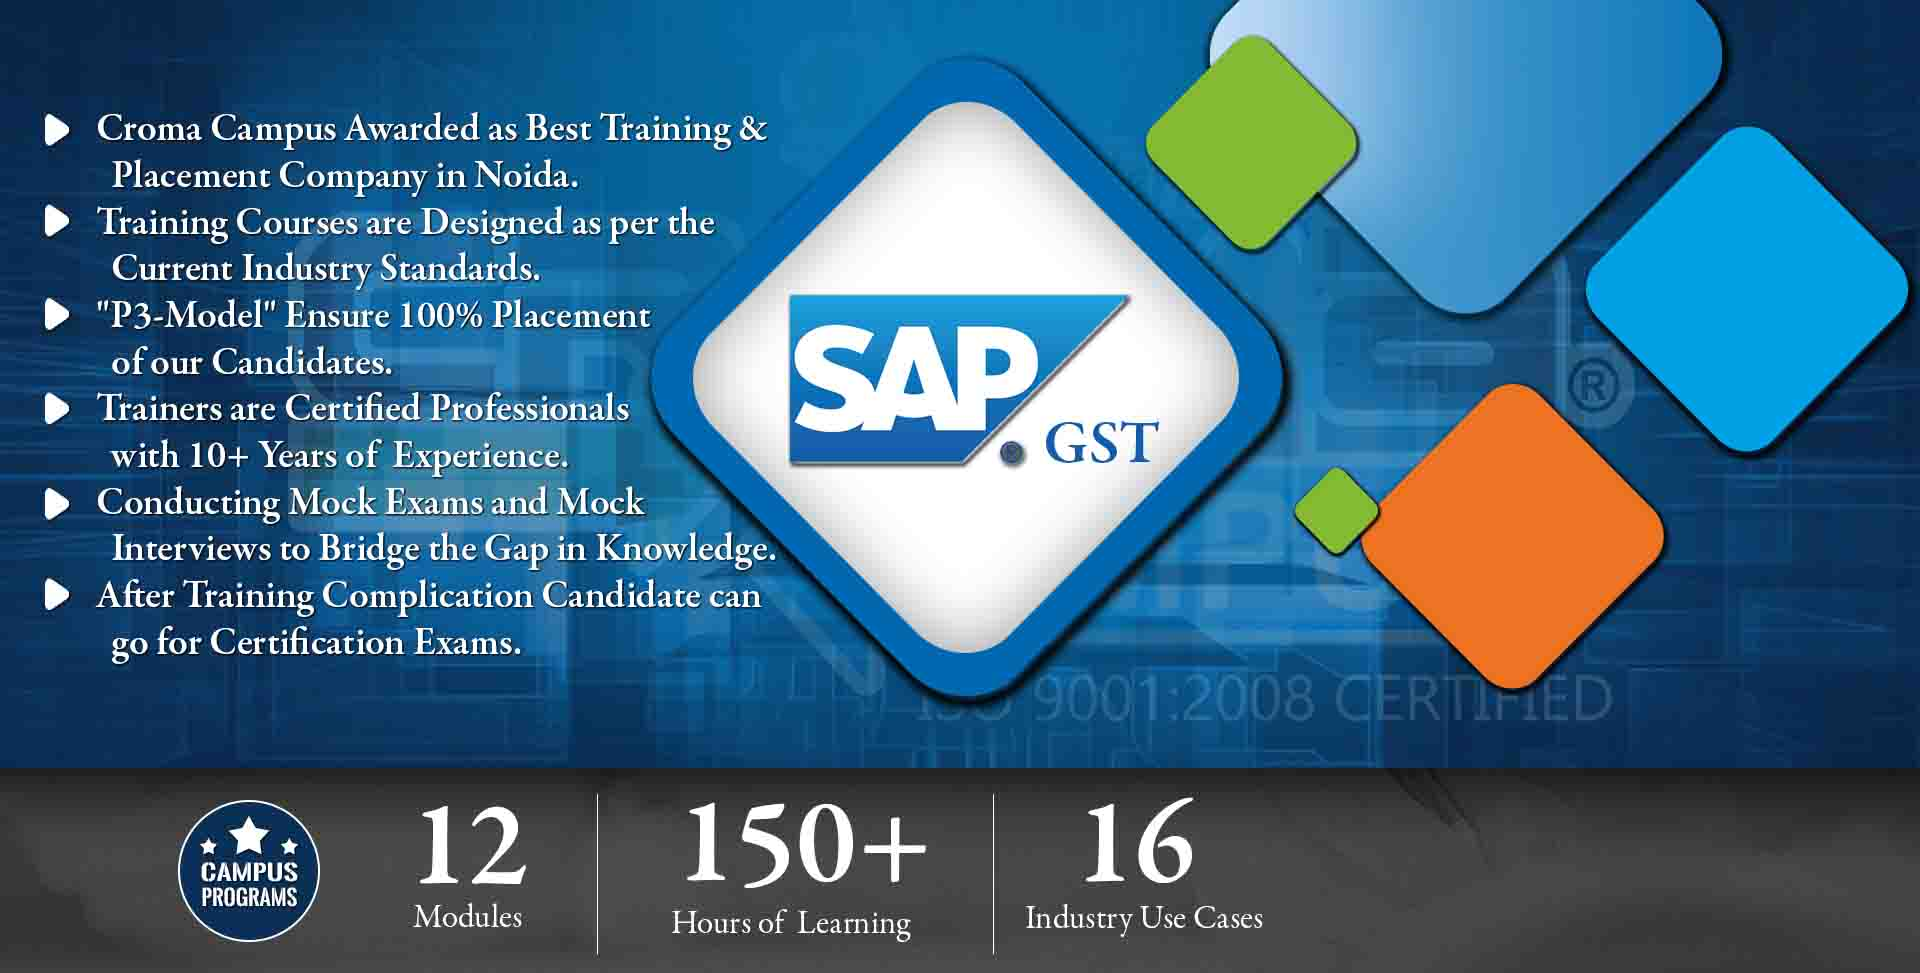 SAP GST Training in Delhi NCR- Croma Campus